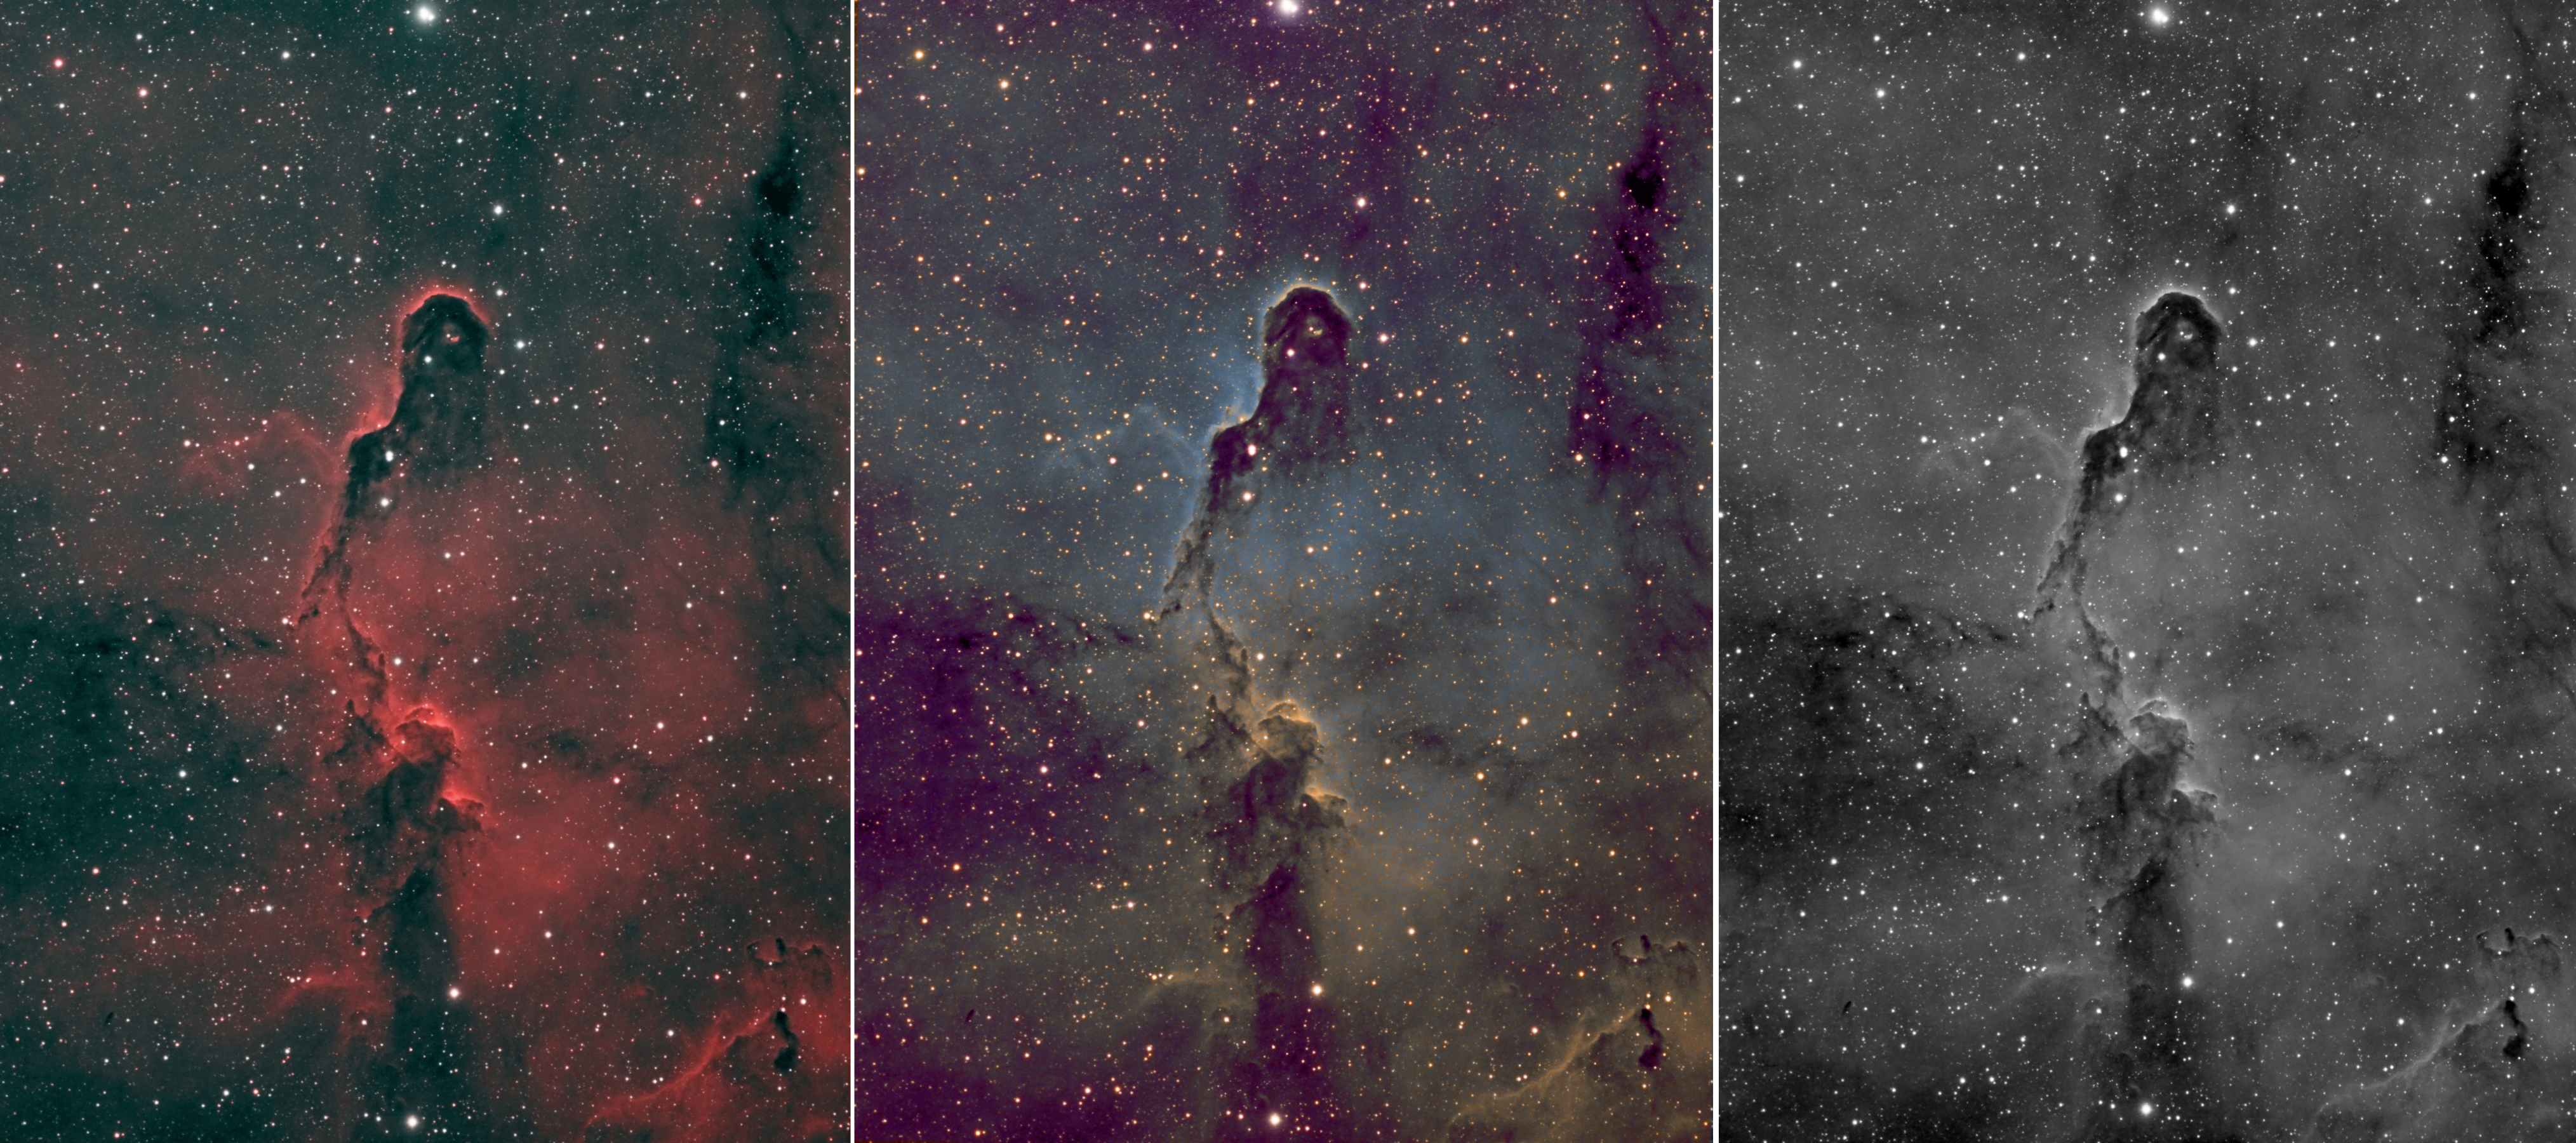 2013-04-08 11-27-22 – 2013_IC1396_Collage